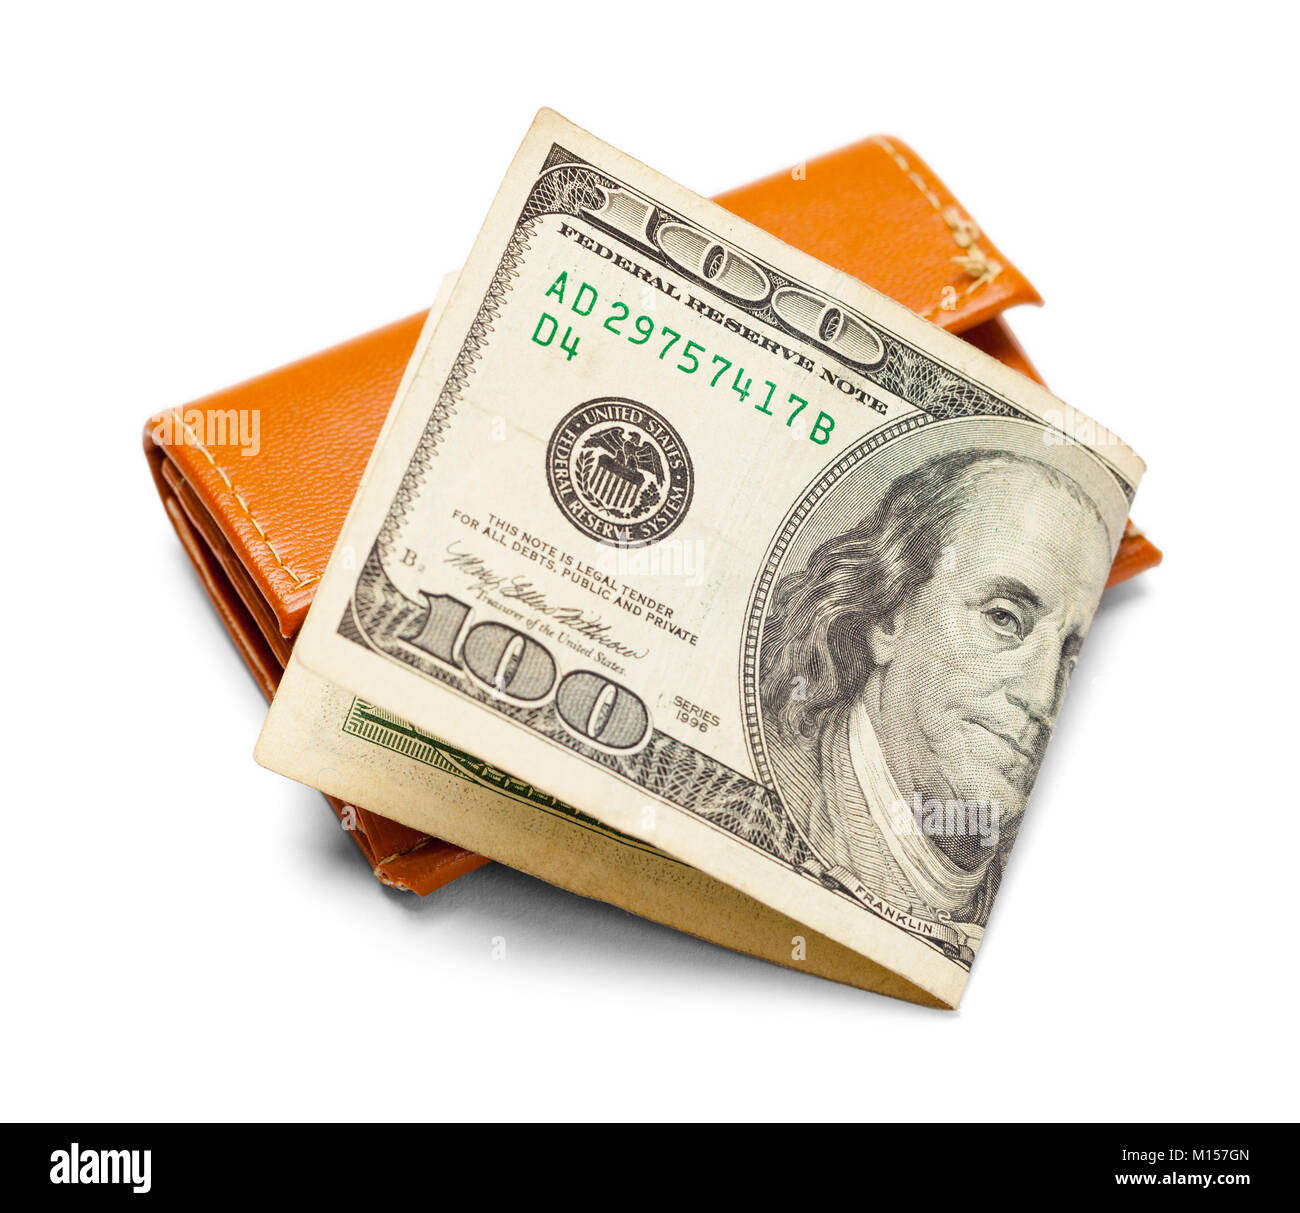 Hundred Dollar Bill and Wallet Isolated on a White Background. - Stock Image